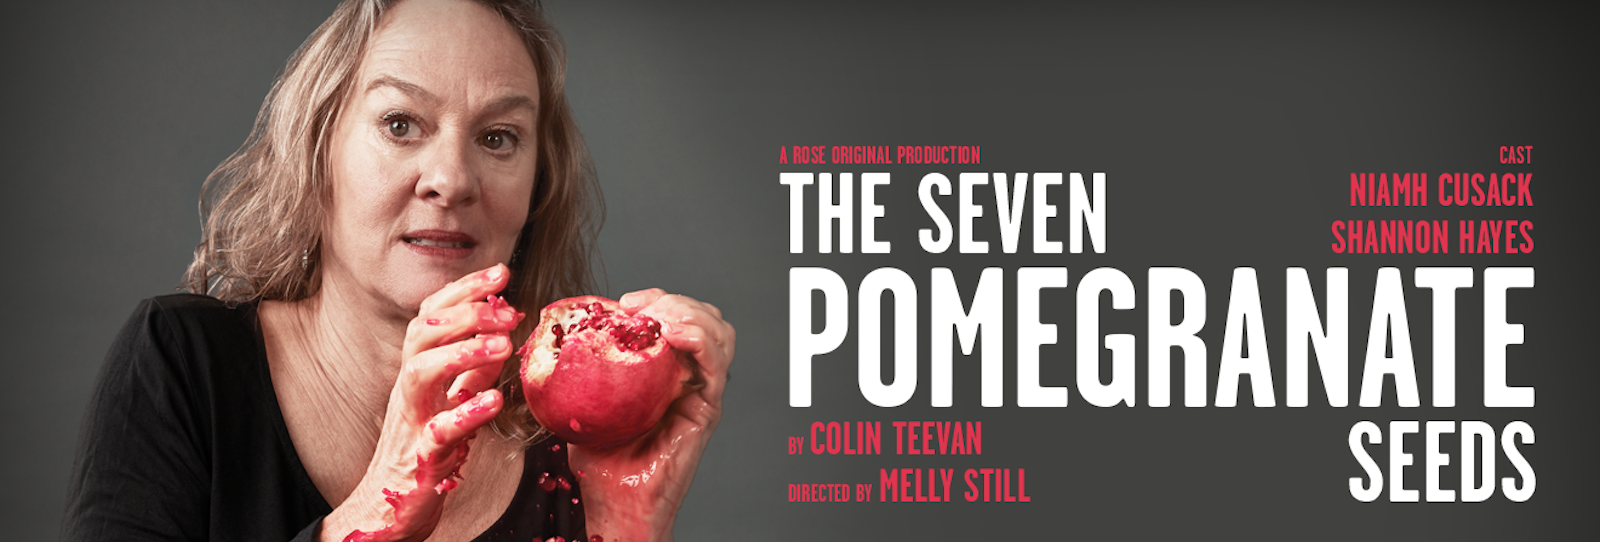 Shannon Hayes to join Niamh Cusack in world premiere of Colin Teevan's The Seven Pomegranate Seeds at Rose Theatre